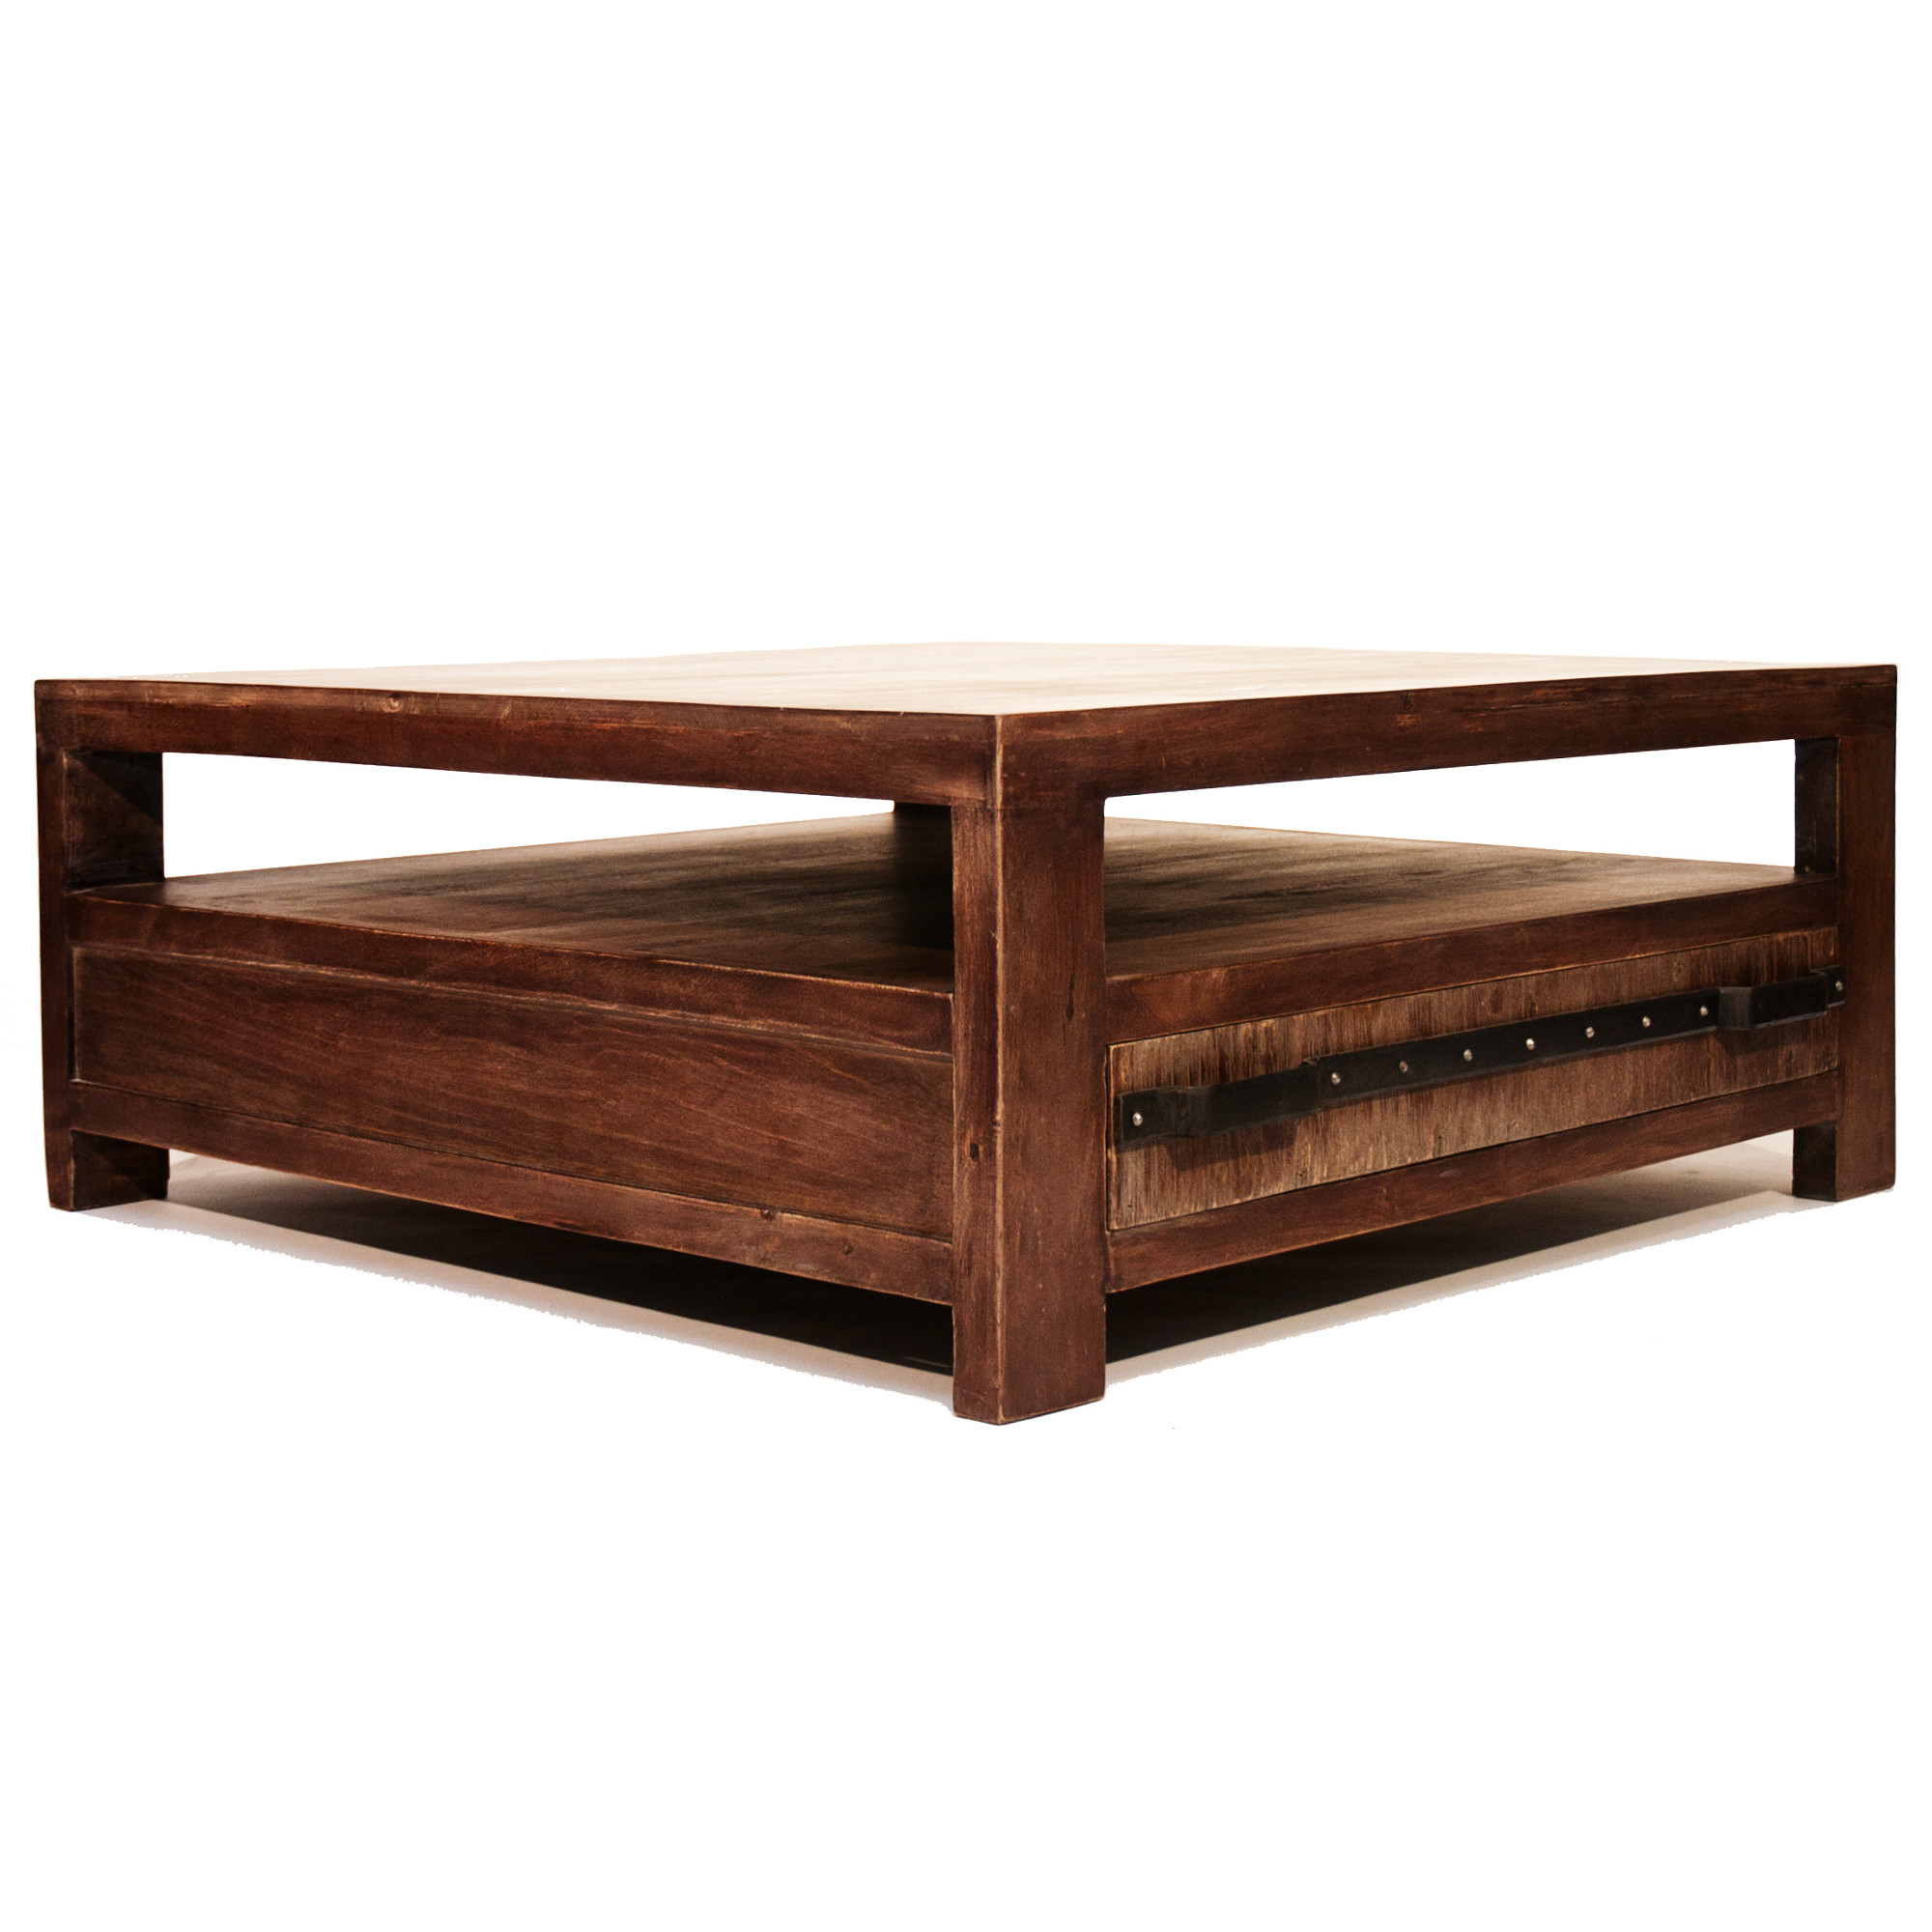 La table basse dock - Table basse coloniale ...